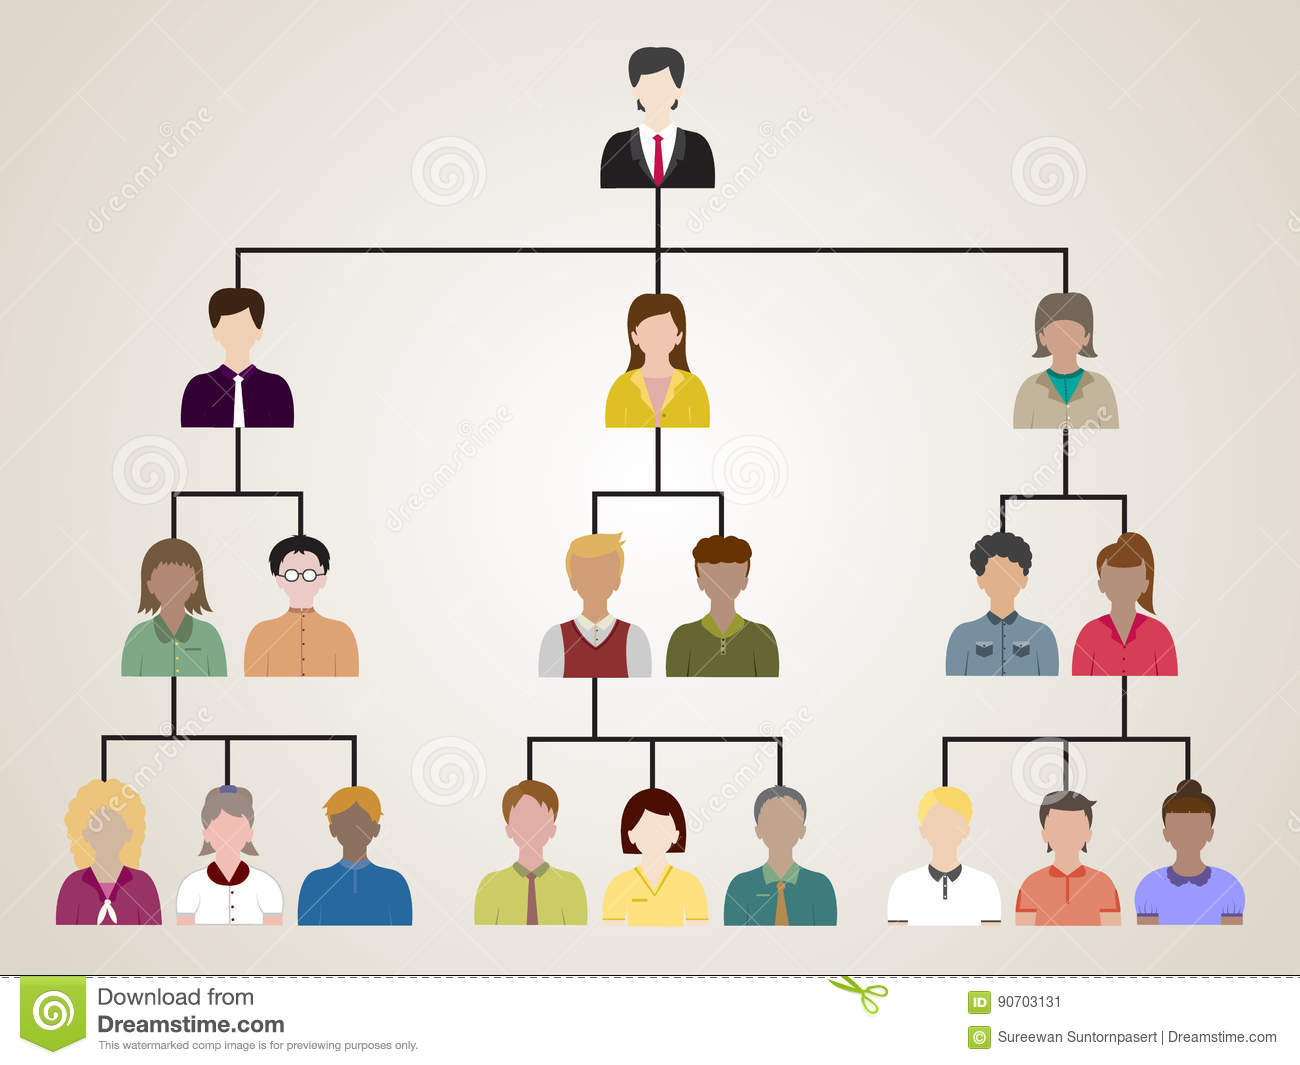 How Does Organizational Structure Affect Performance Measurement?